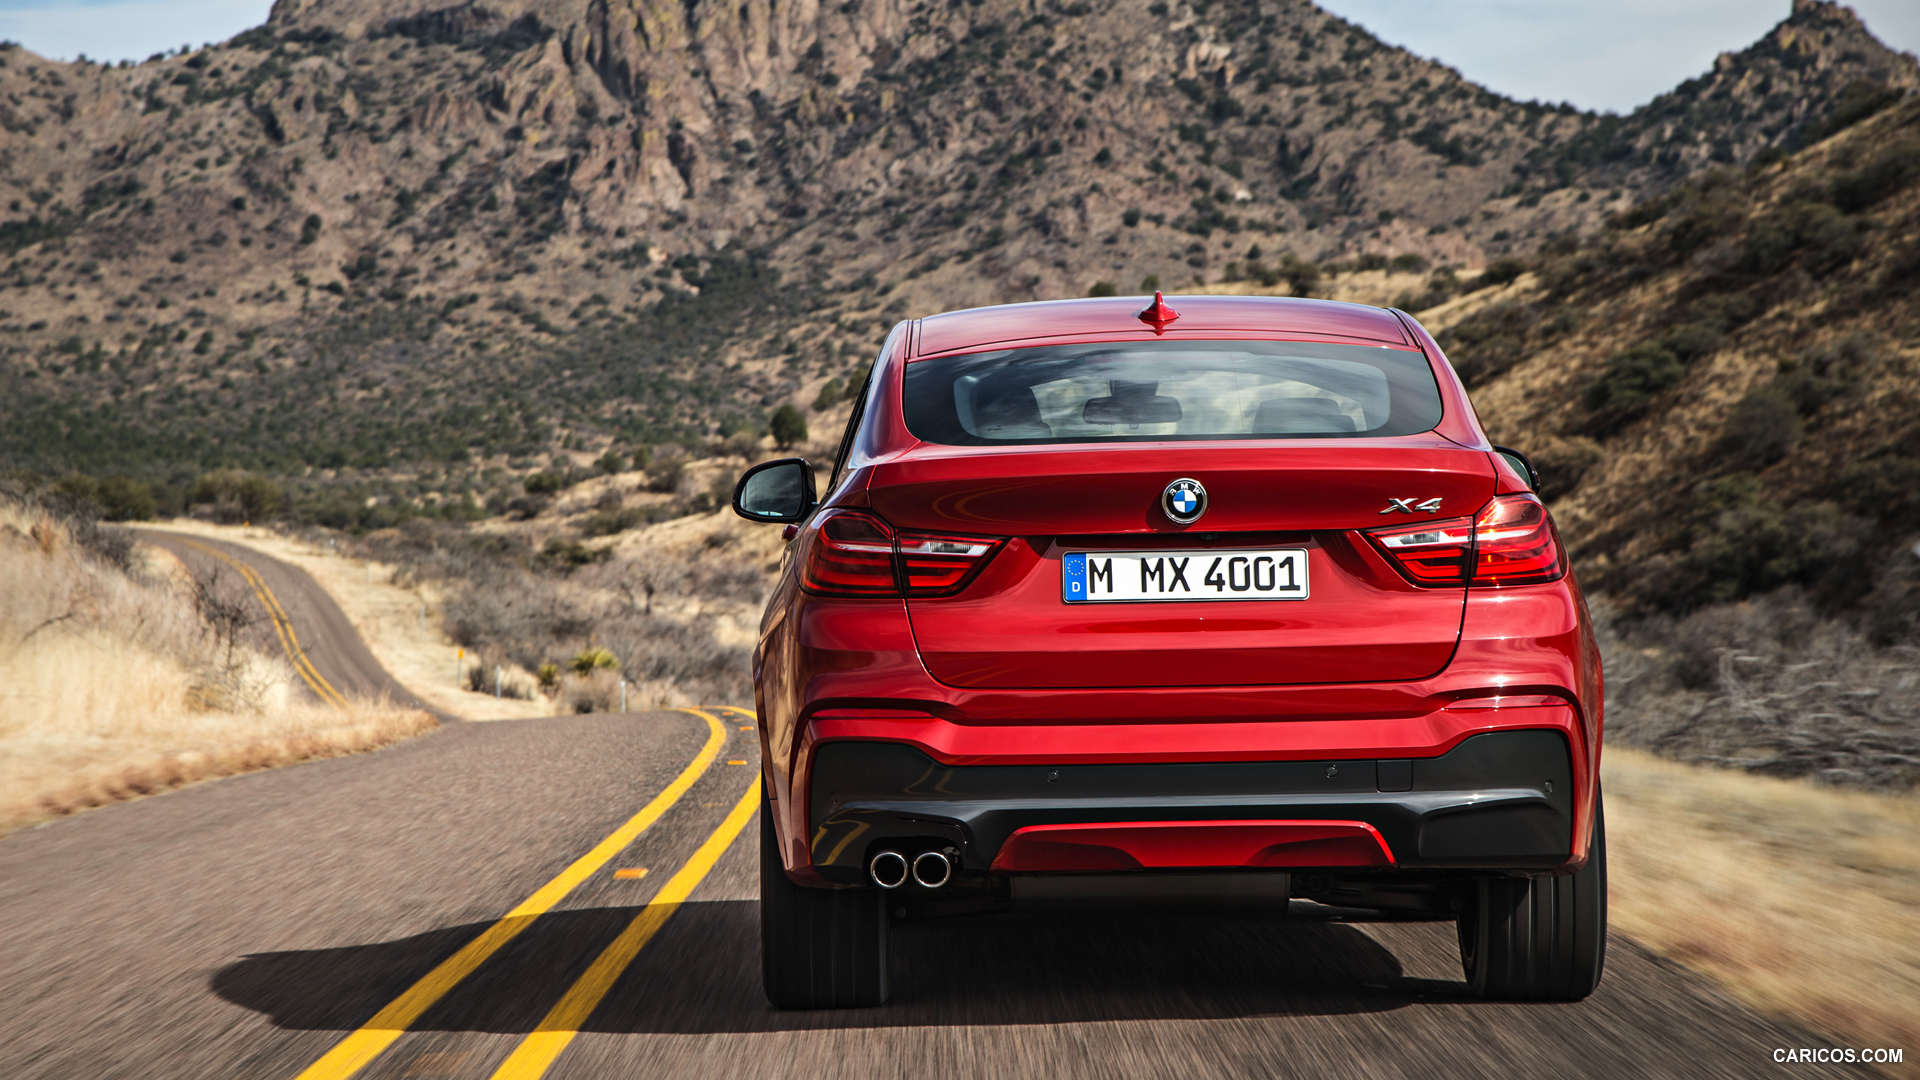 1920x1080 - BMW X4 Wallpapers 9